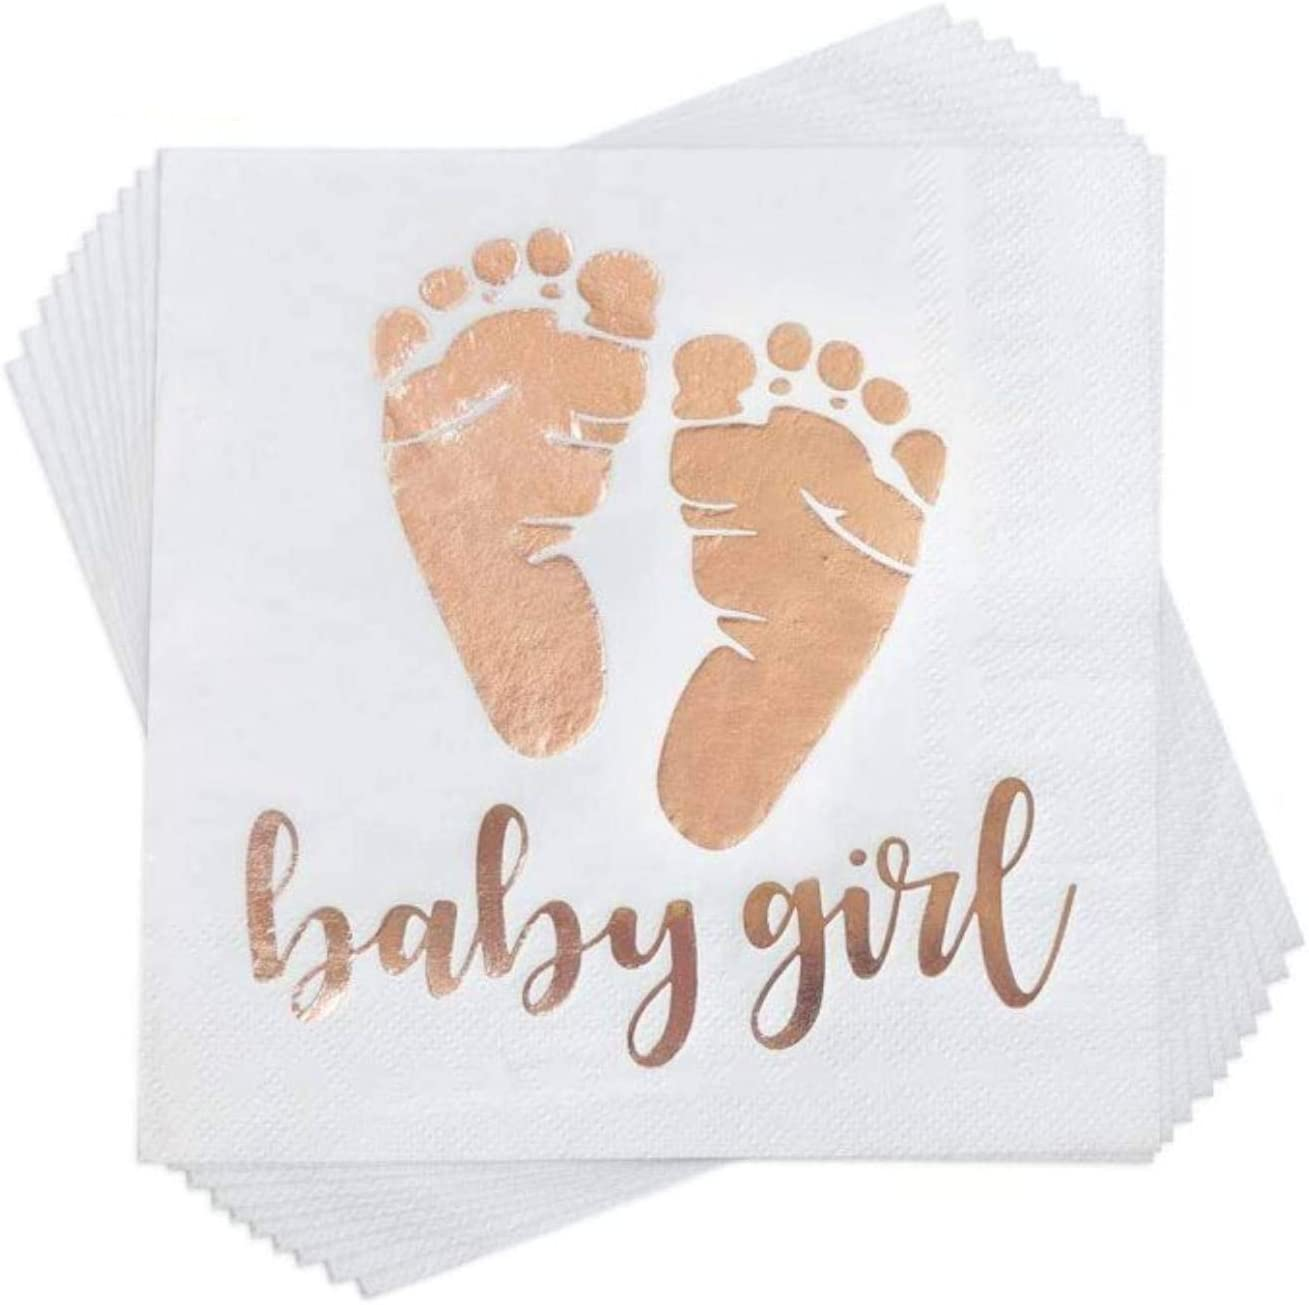 Trgowaul 100 Pack Baby Girl Shower Napkins Rose Gold Baby Girl Letters and Baby Footprint Pattern Beverage Napkins 3-Ply White Paper Cocktail Napkins for Girl Baby Shower Party